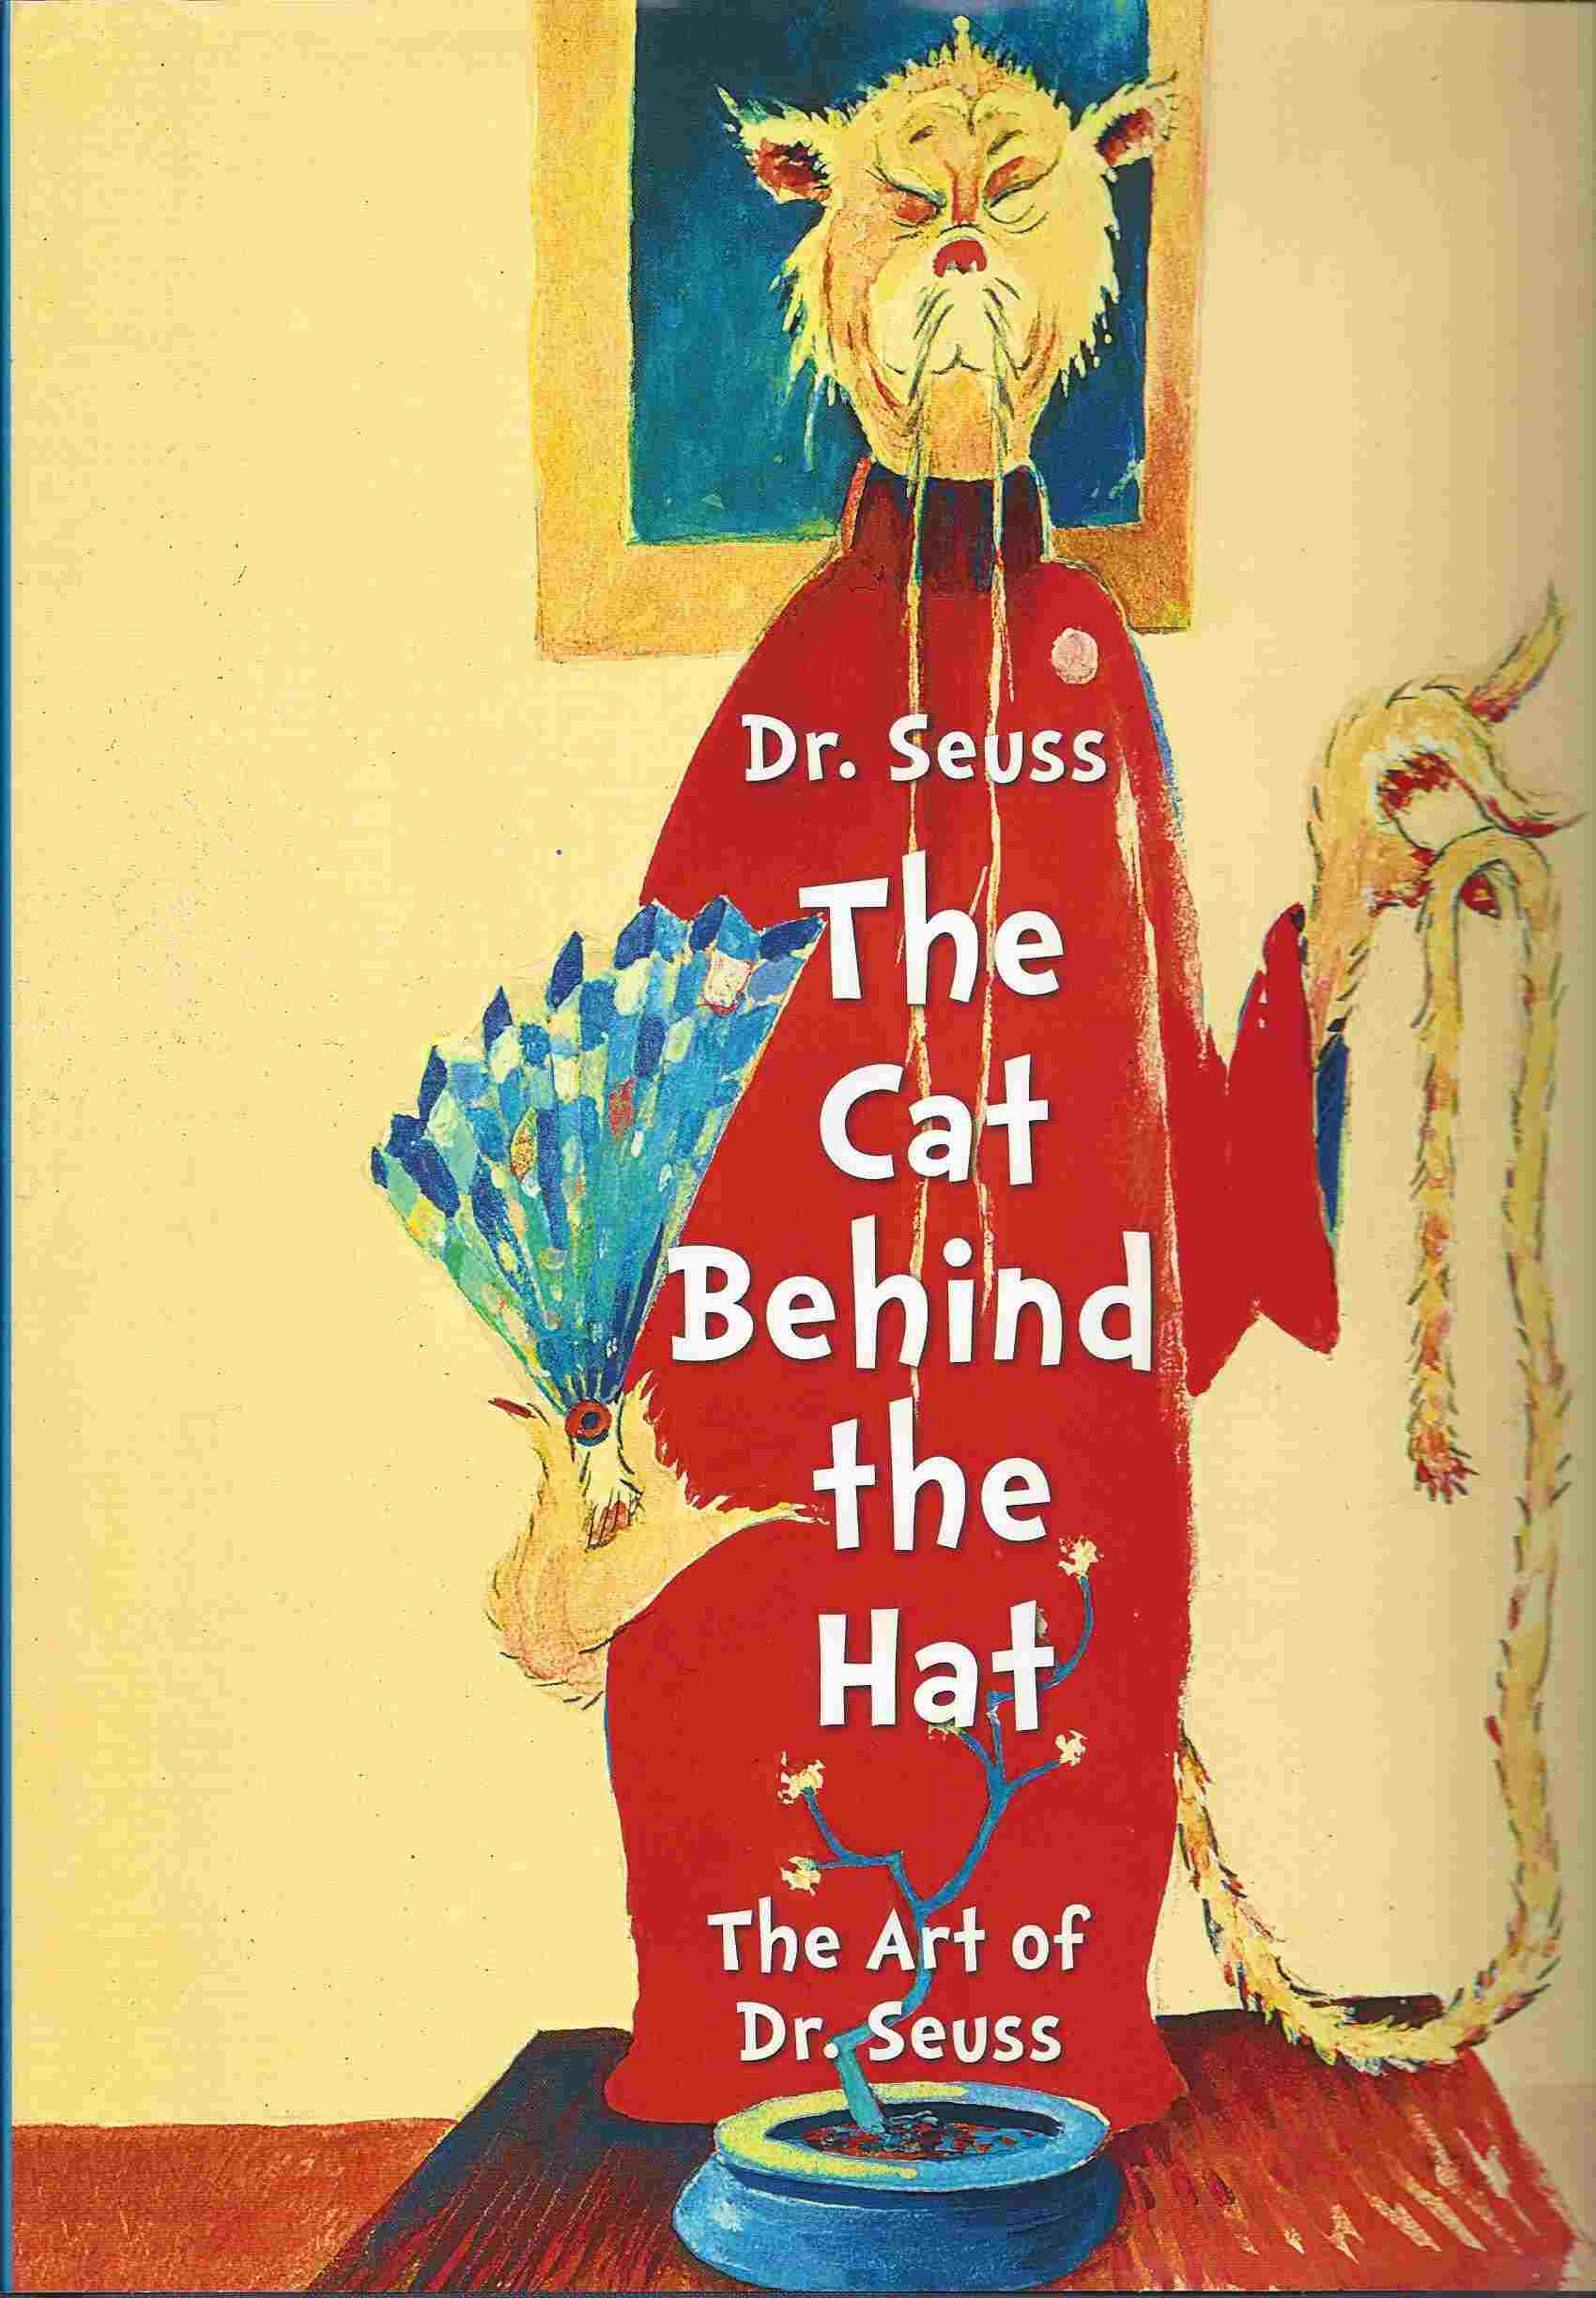 Image for Dr. Seuss - The Cat Behind the Hat  - The Art of Dr. Seuss